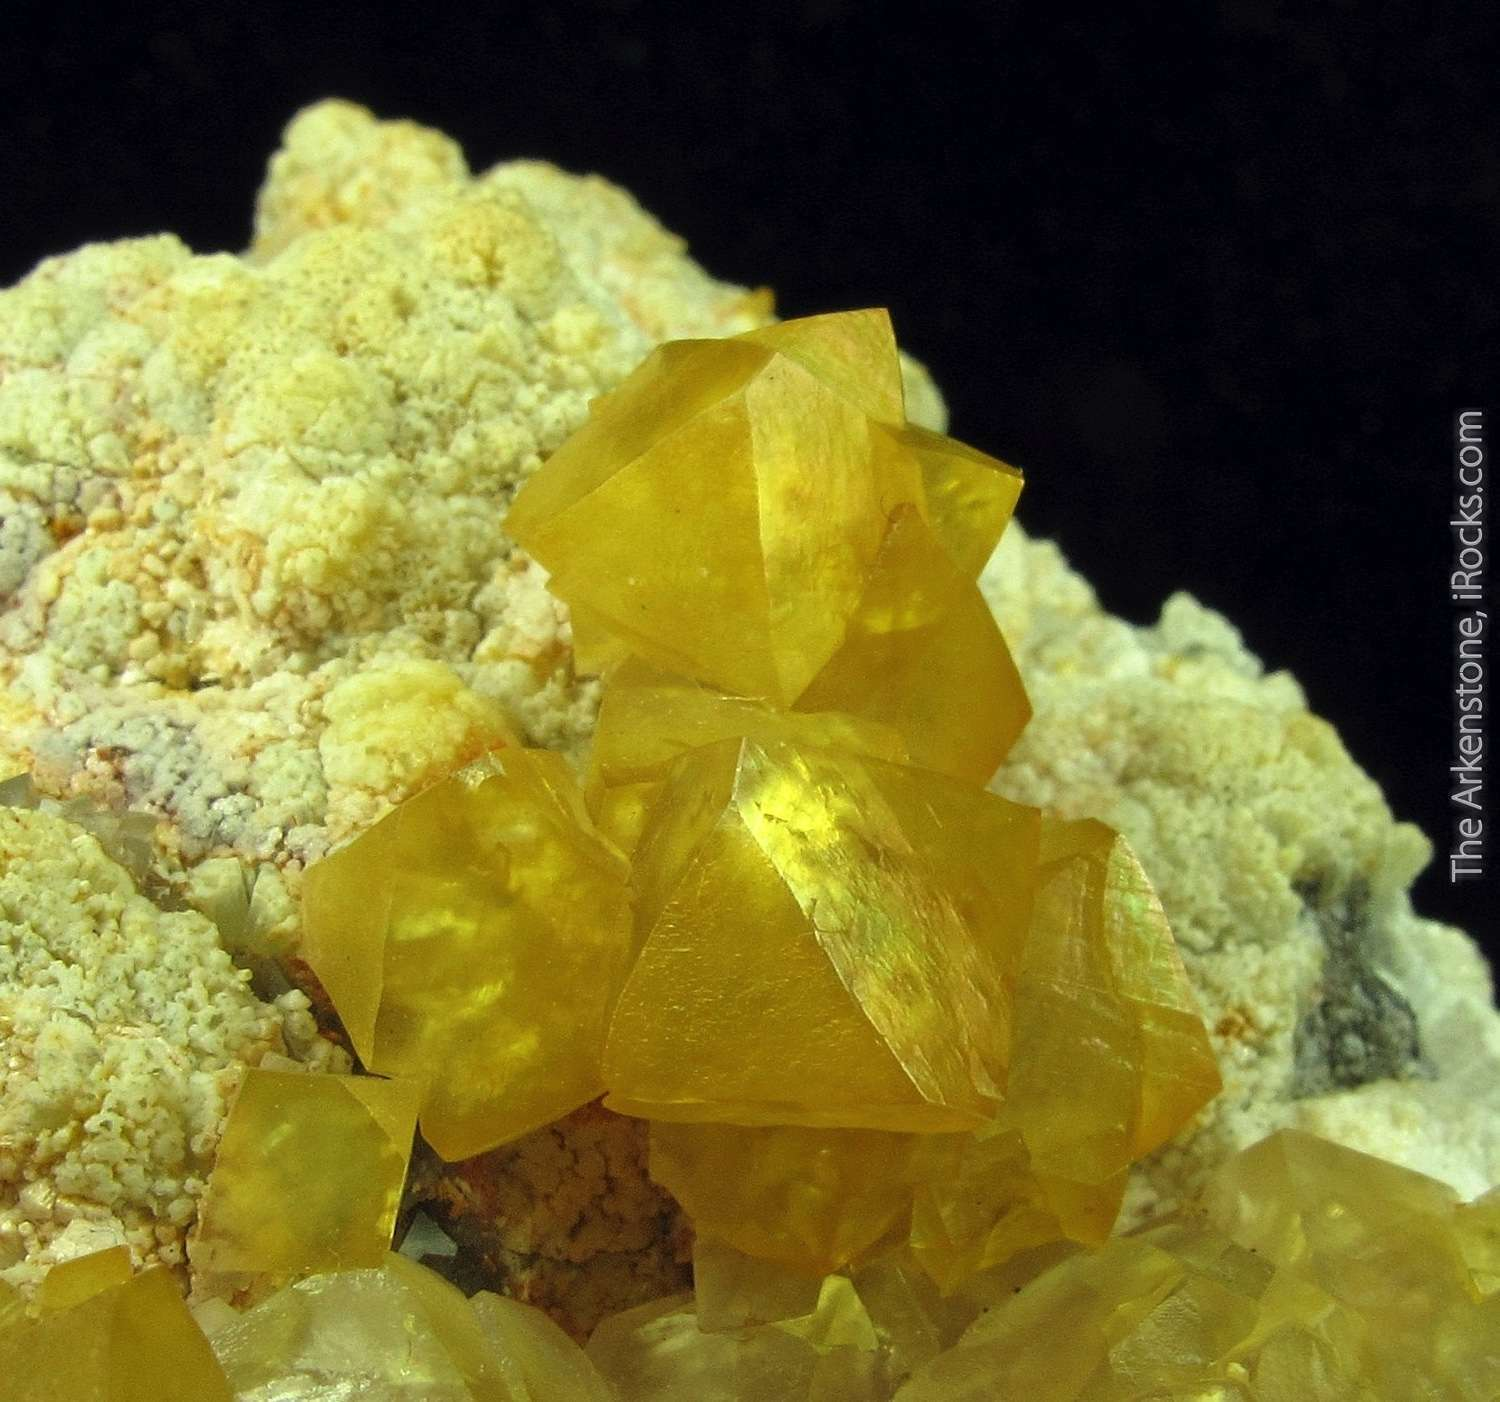 This choice cabinet specimen sharp Cadmian Smithsonite rhombohedral